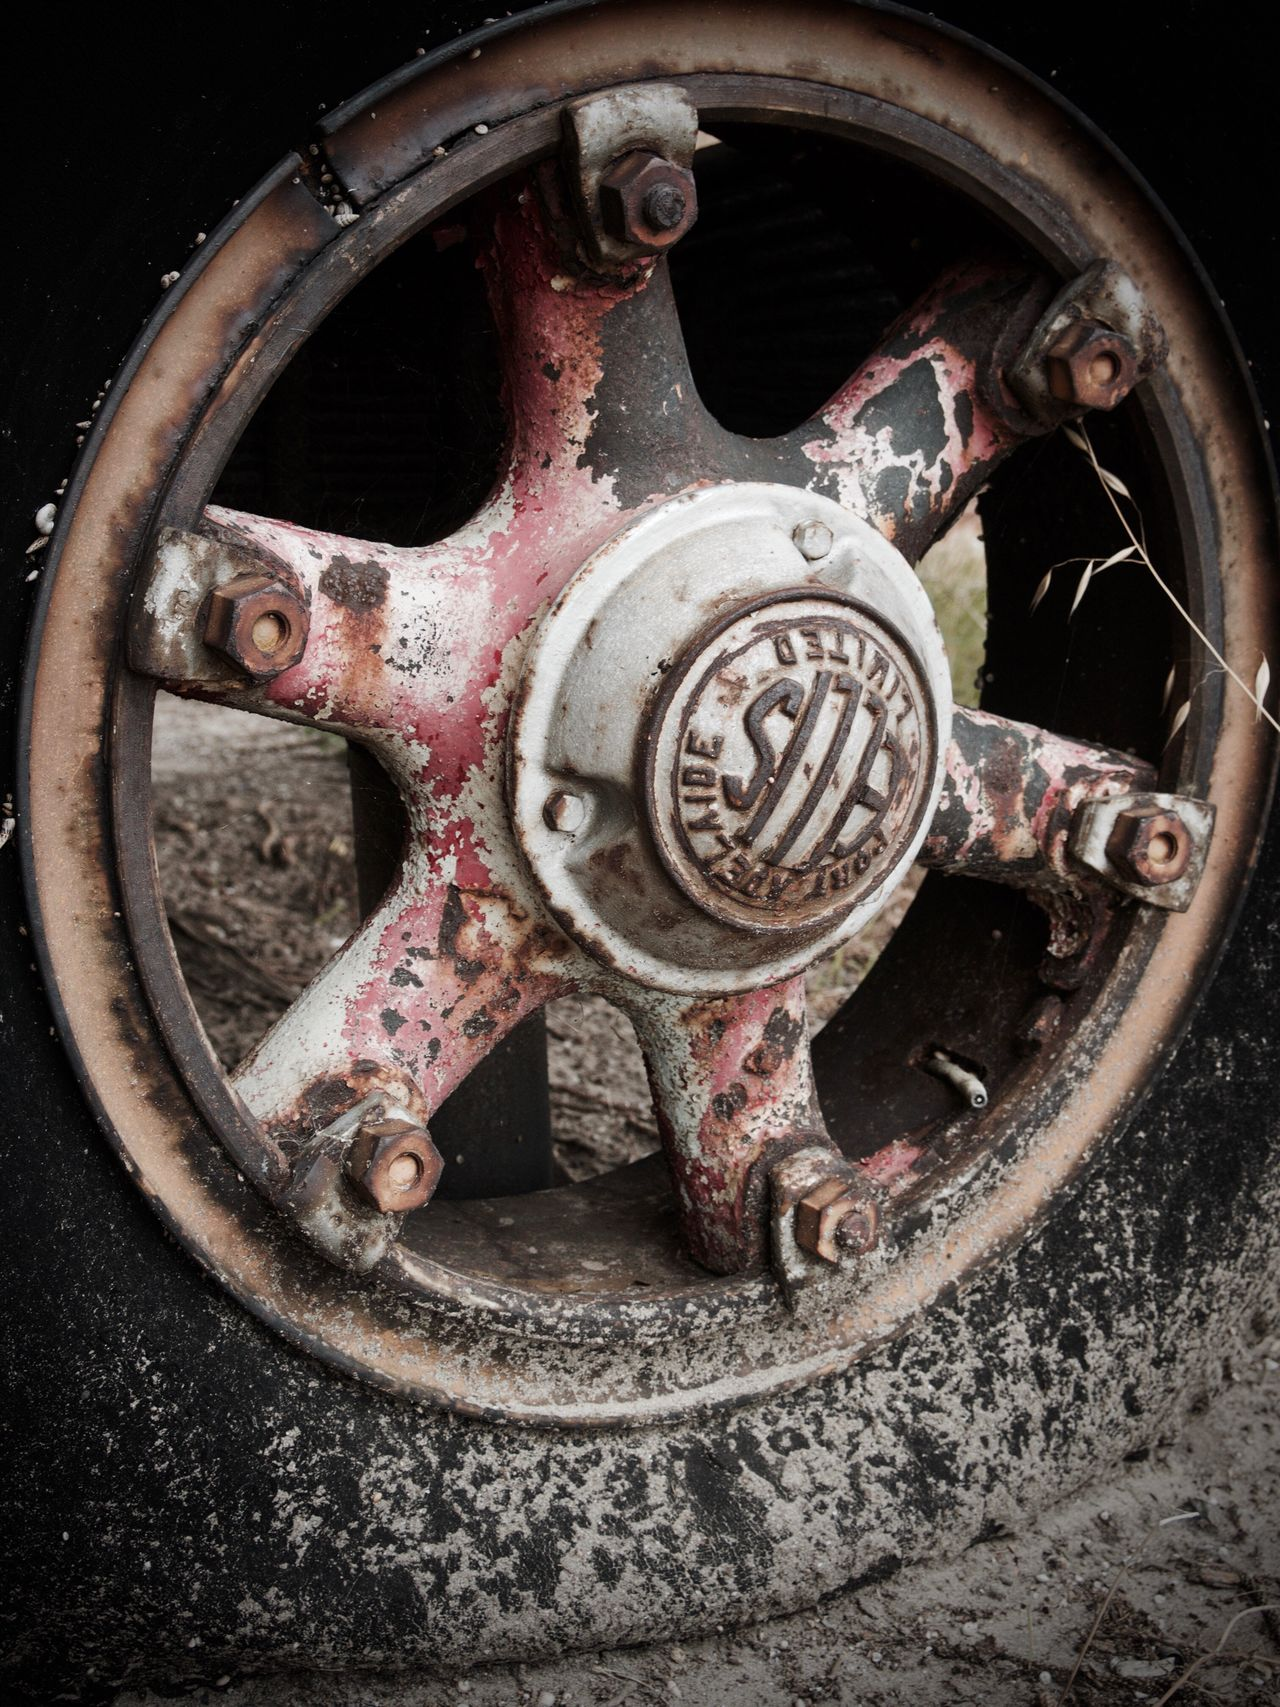 Interesting old wheel Wheel Metal Rusty Abandoned Close-up Vintage Cars No People Old Wheel Old Wheels Spoked Wheels